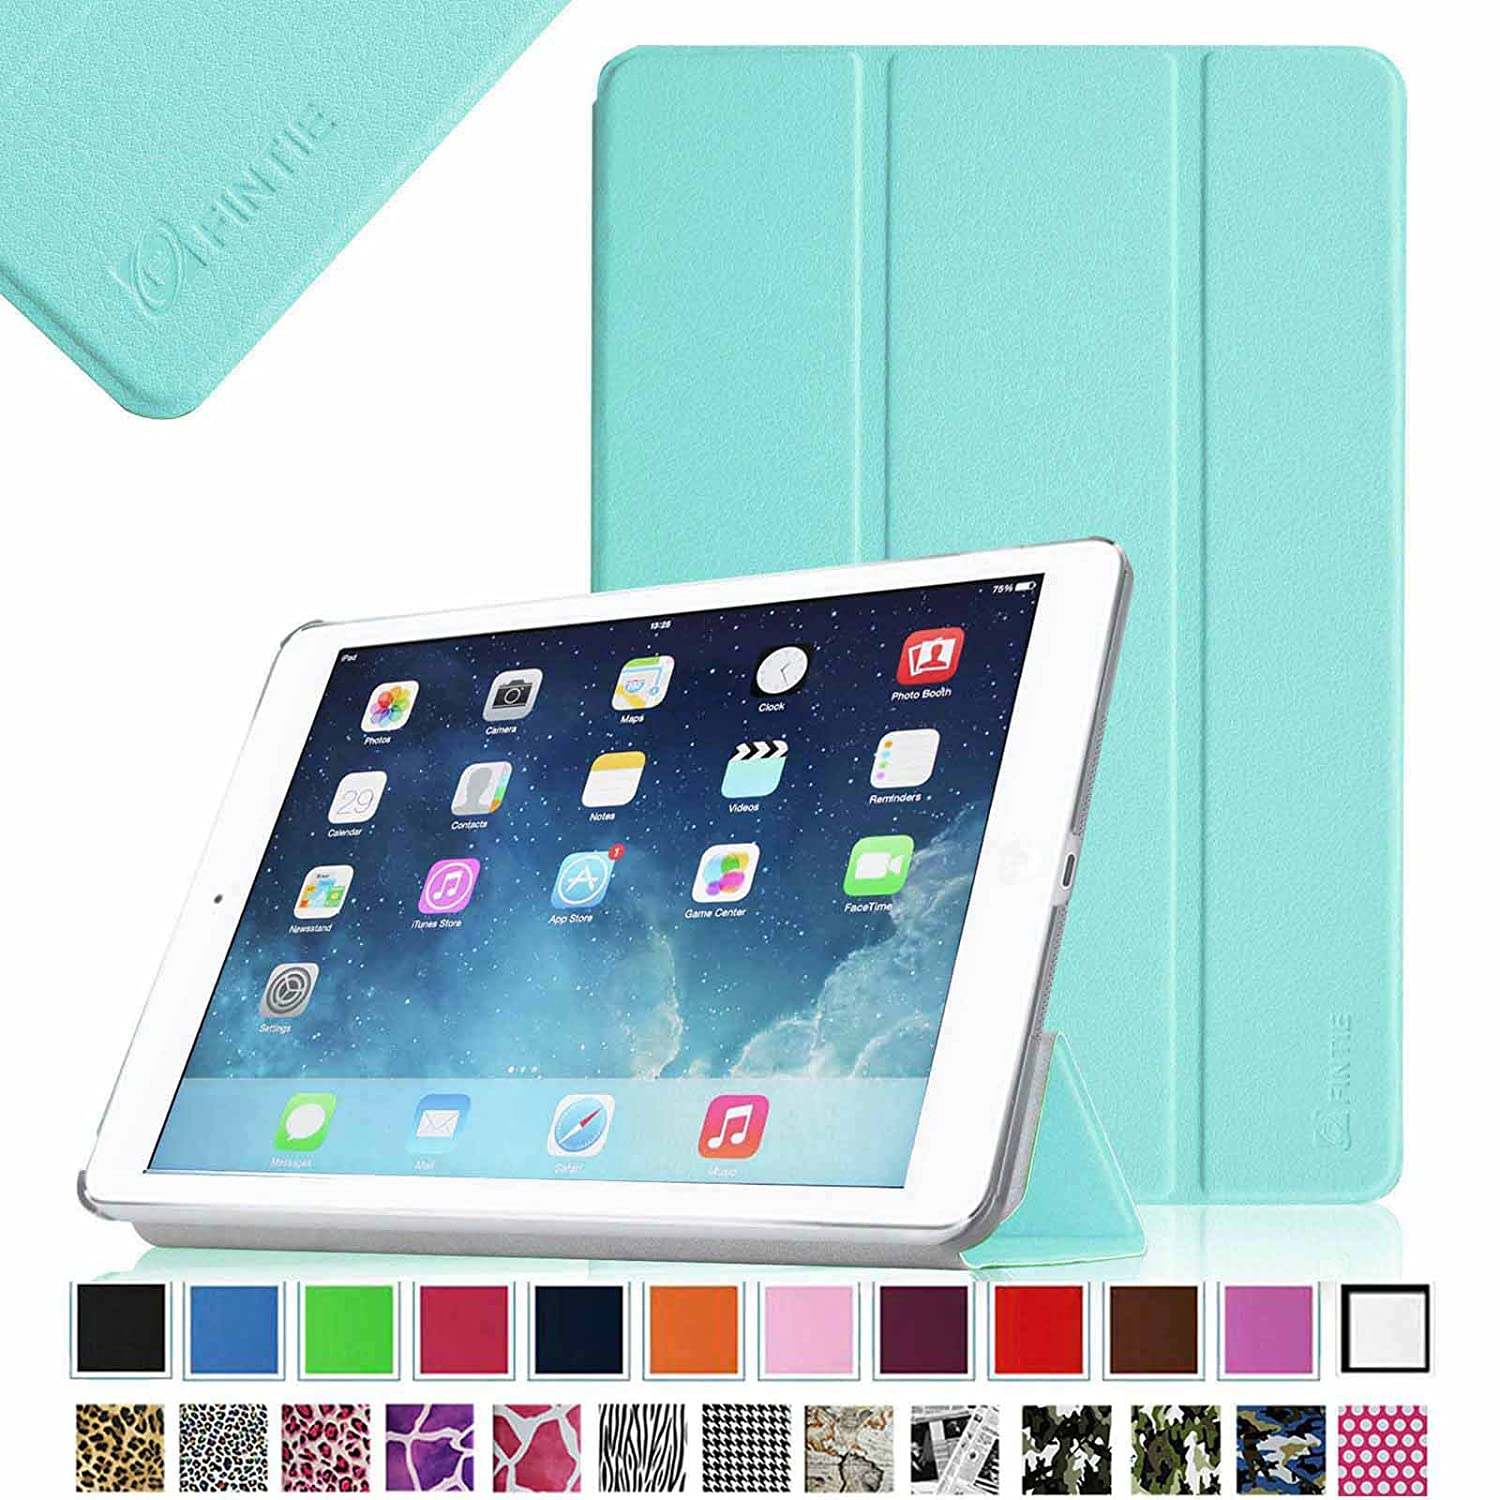 Best Apple iPad Cases Reviewed From Amazon   iPad Cases